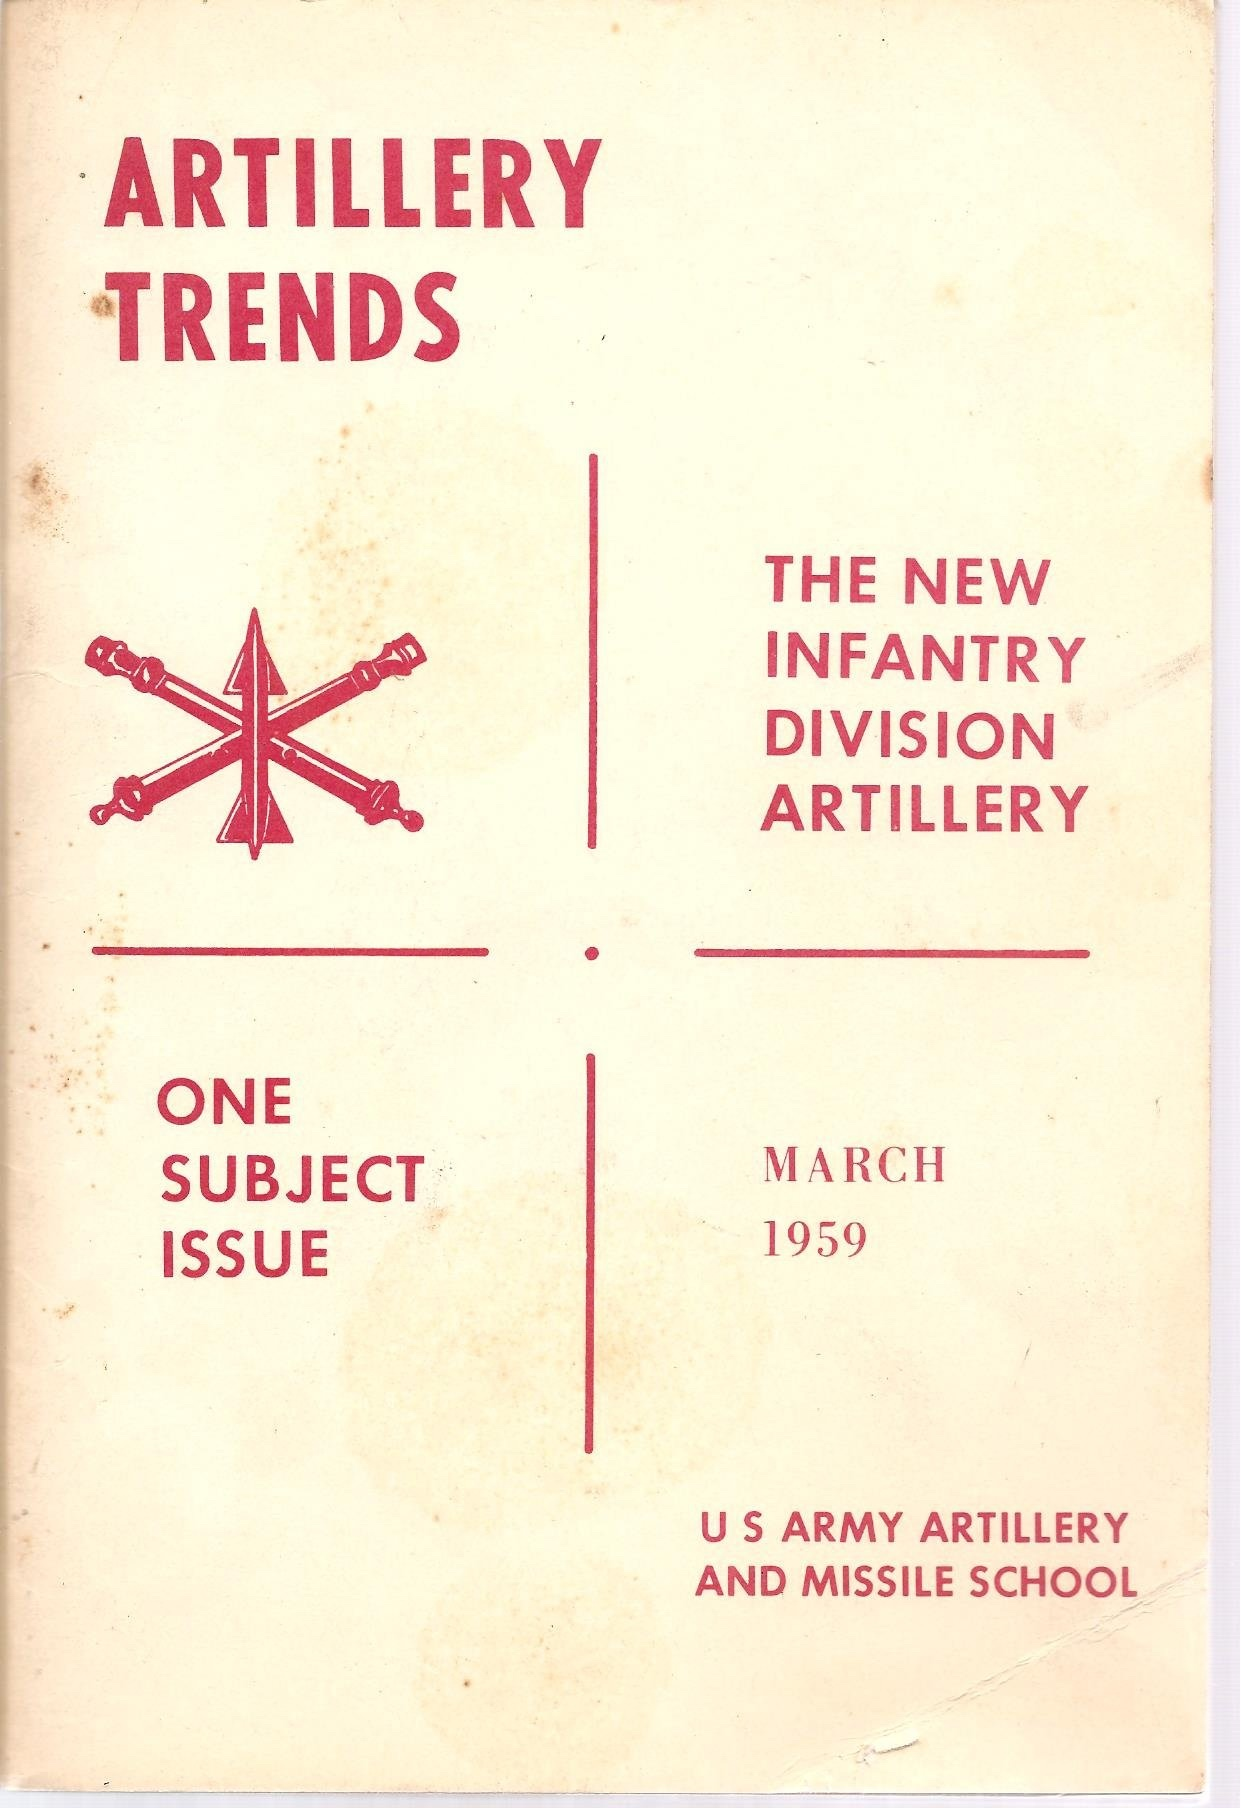 Image for ARTILLERY TRENDS THE NEW INFANTRY DIVISION ARTILLERY ONE SUBJECT ISSUE MARCH 1959